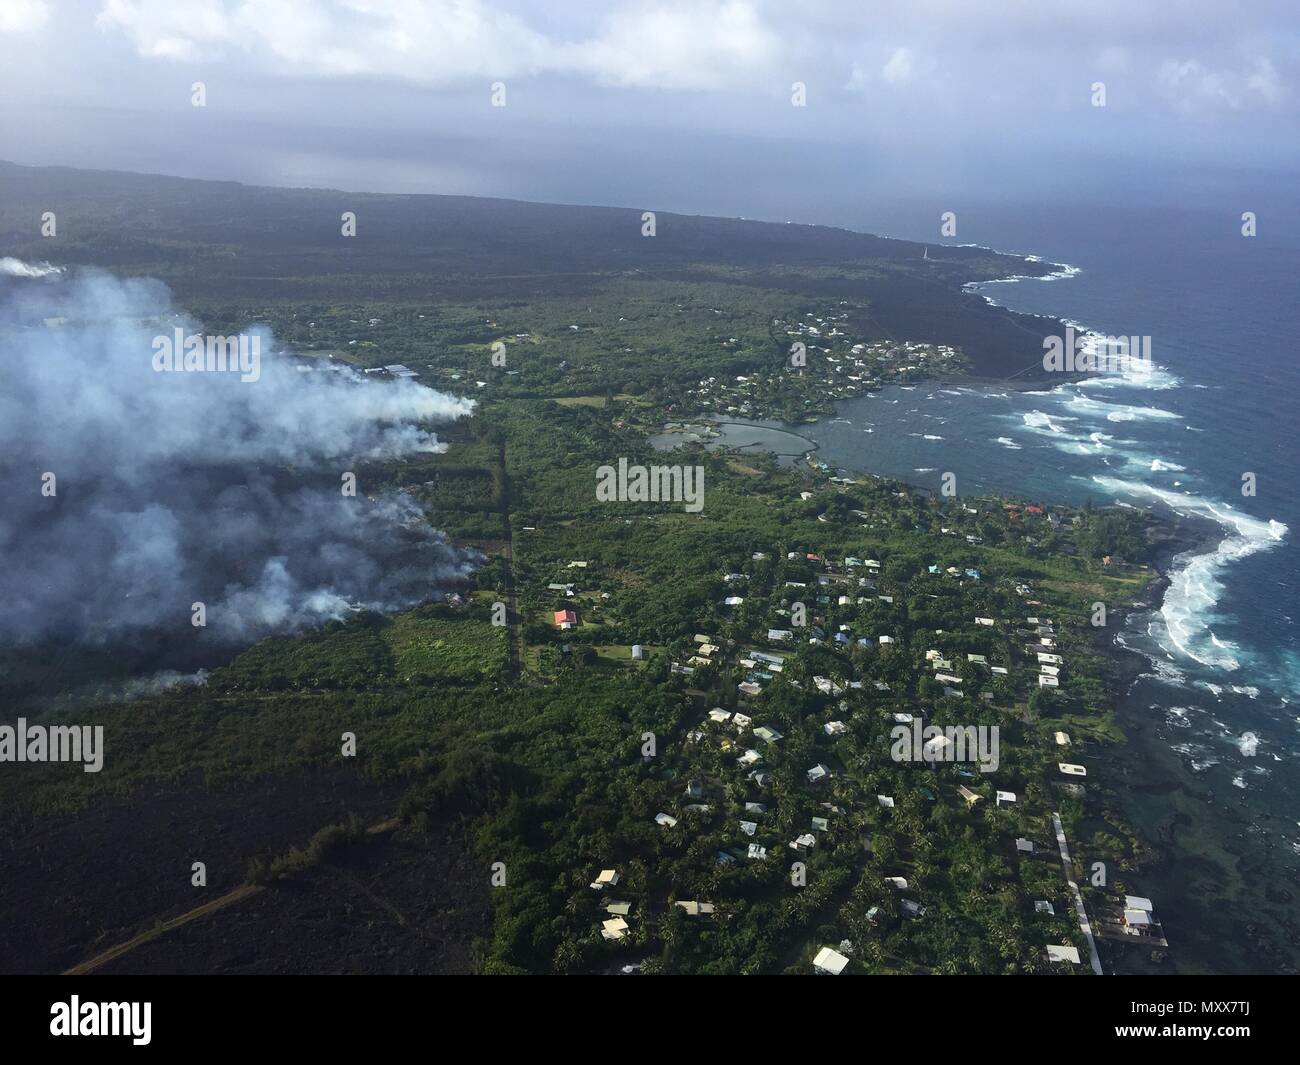 Lava flows toward the coast destroying forest and homes in the Vacationland area caused by the eruption of the Kilauea volcano June 3, 2018 in Hawaii. The recent eruption continues destroying homes, forcing evacuations and spewing lava and poison gas on the Big Island of Hawaii. - Stock Image